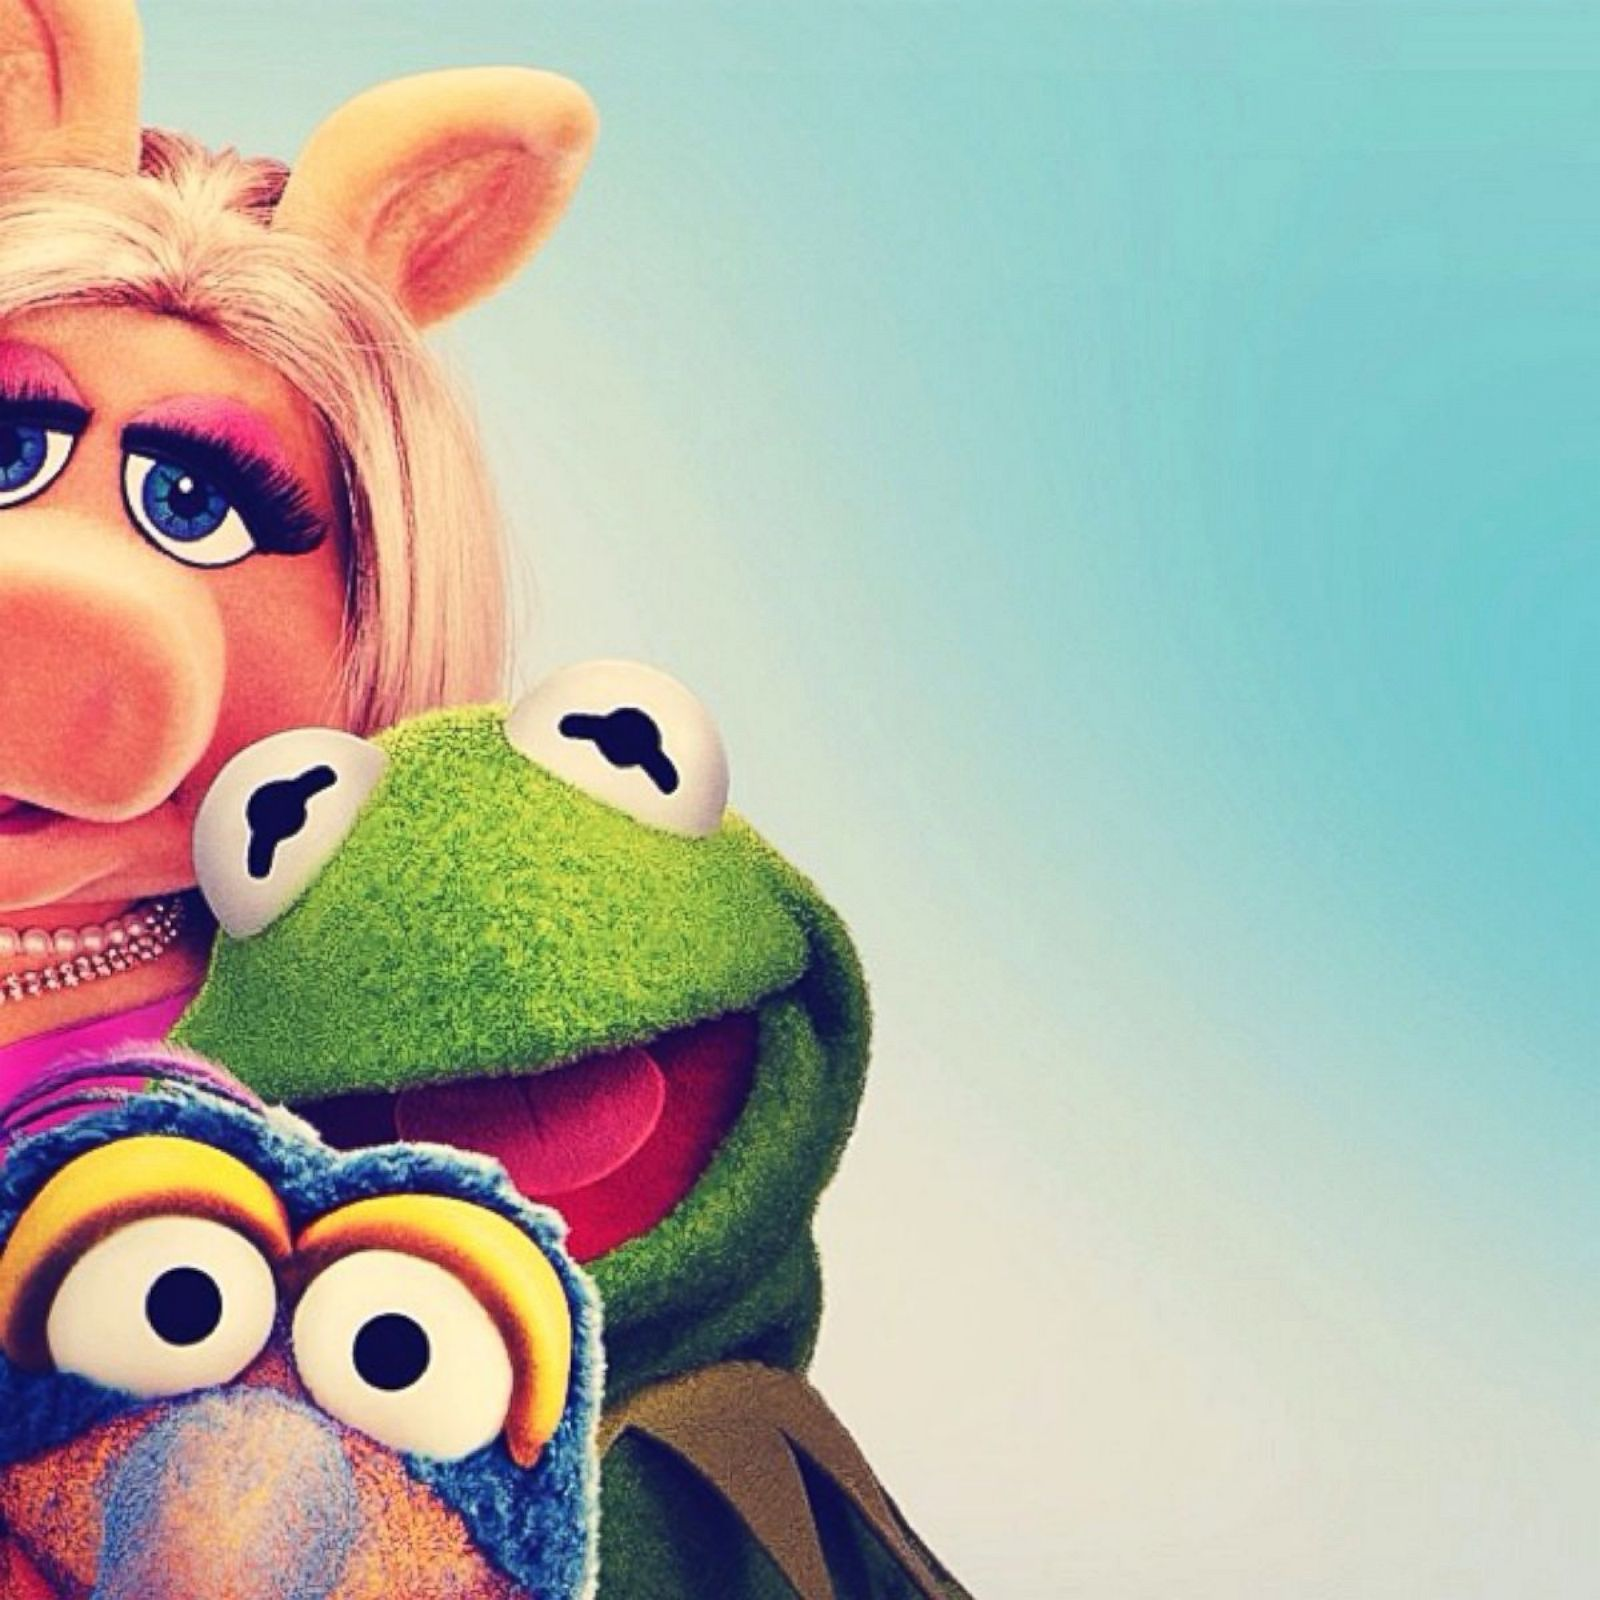 Say Cheese! The Muppets Share Selfies Photos - ABC News